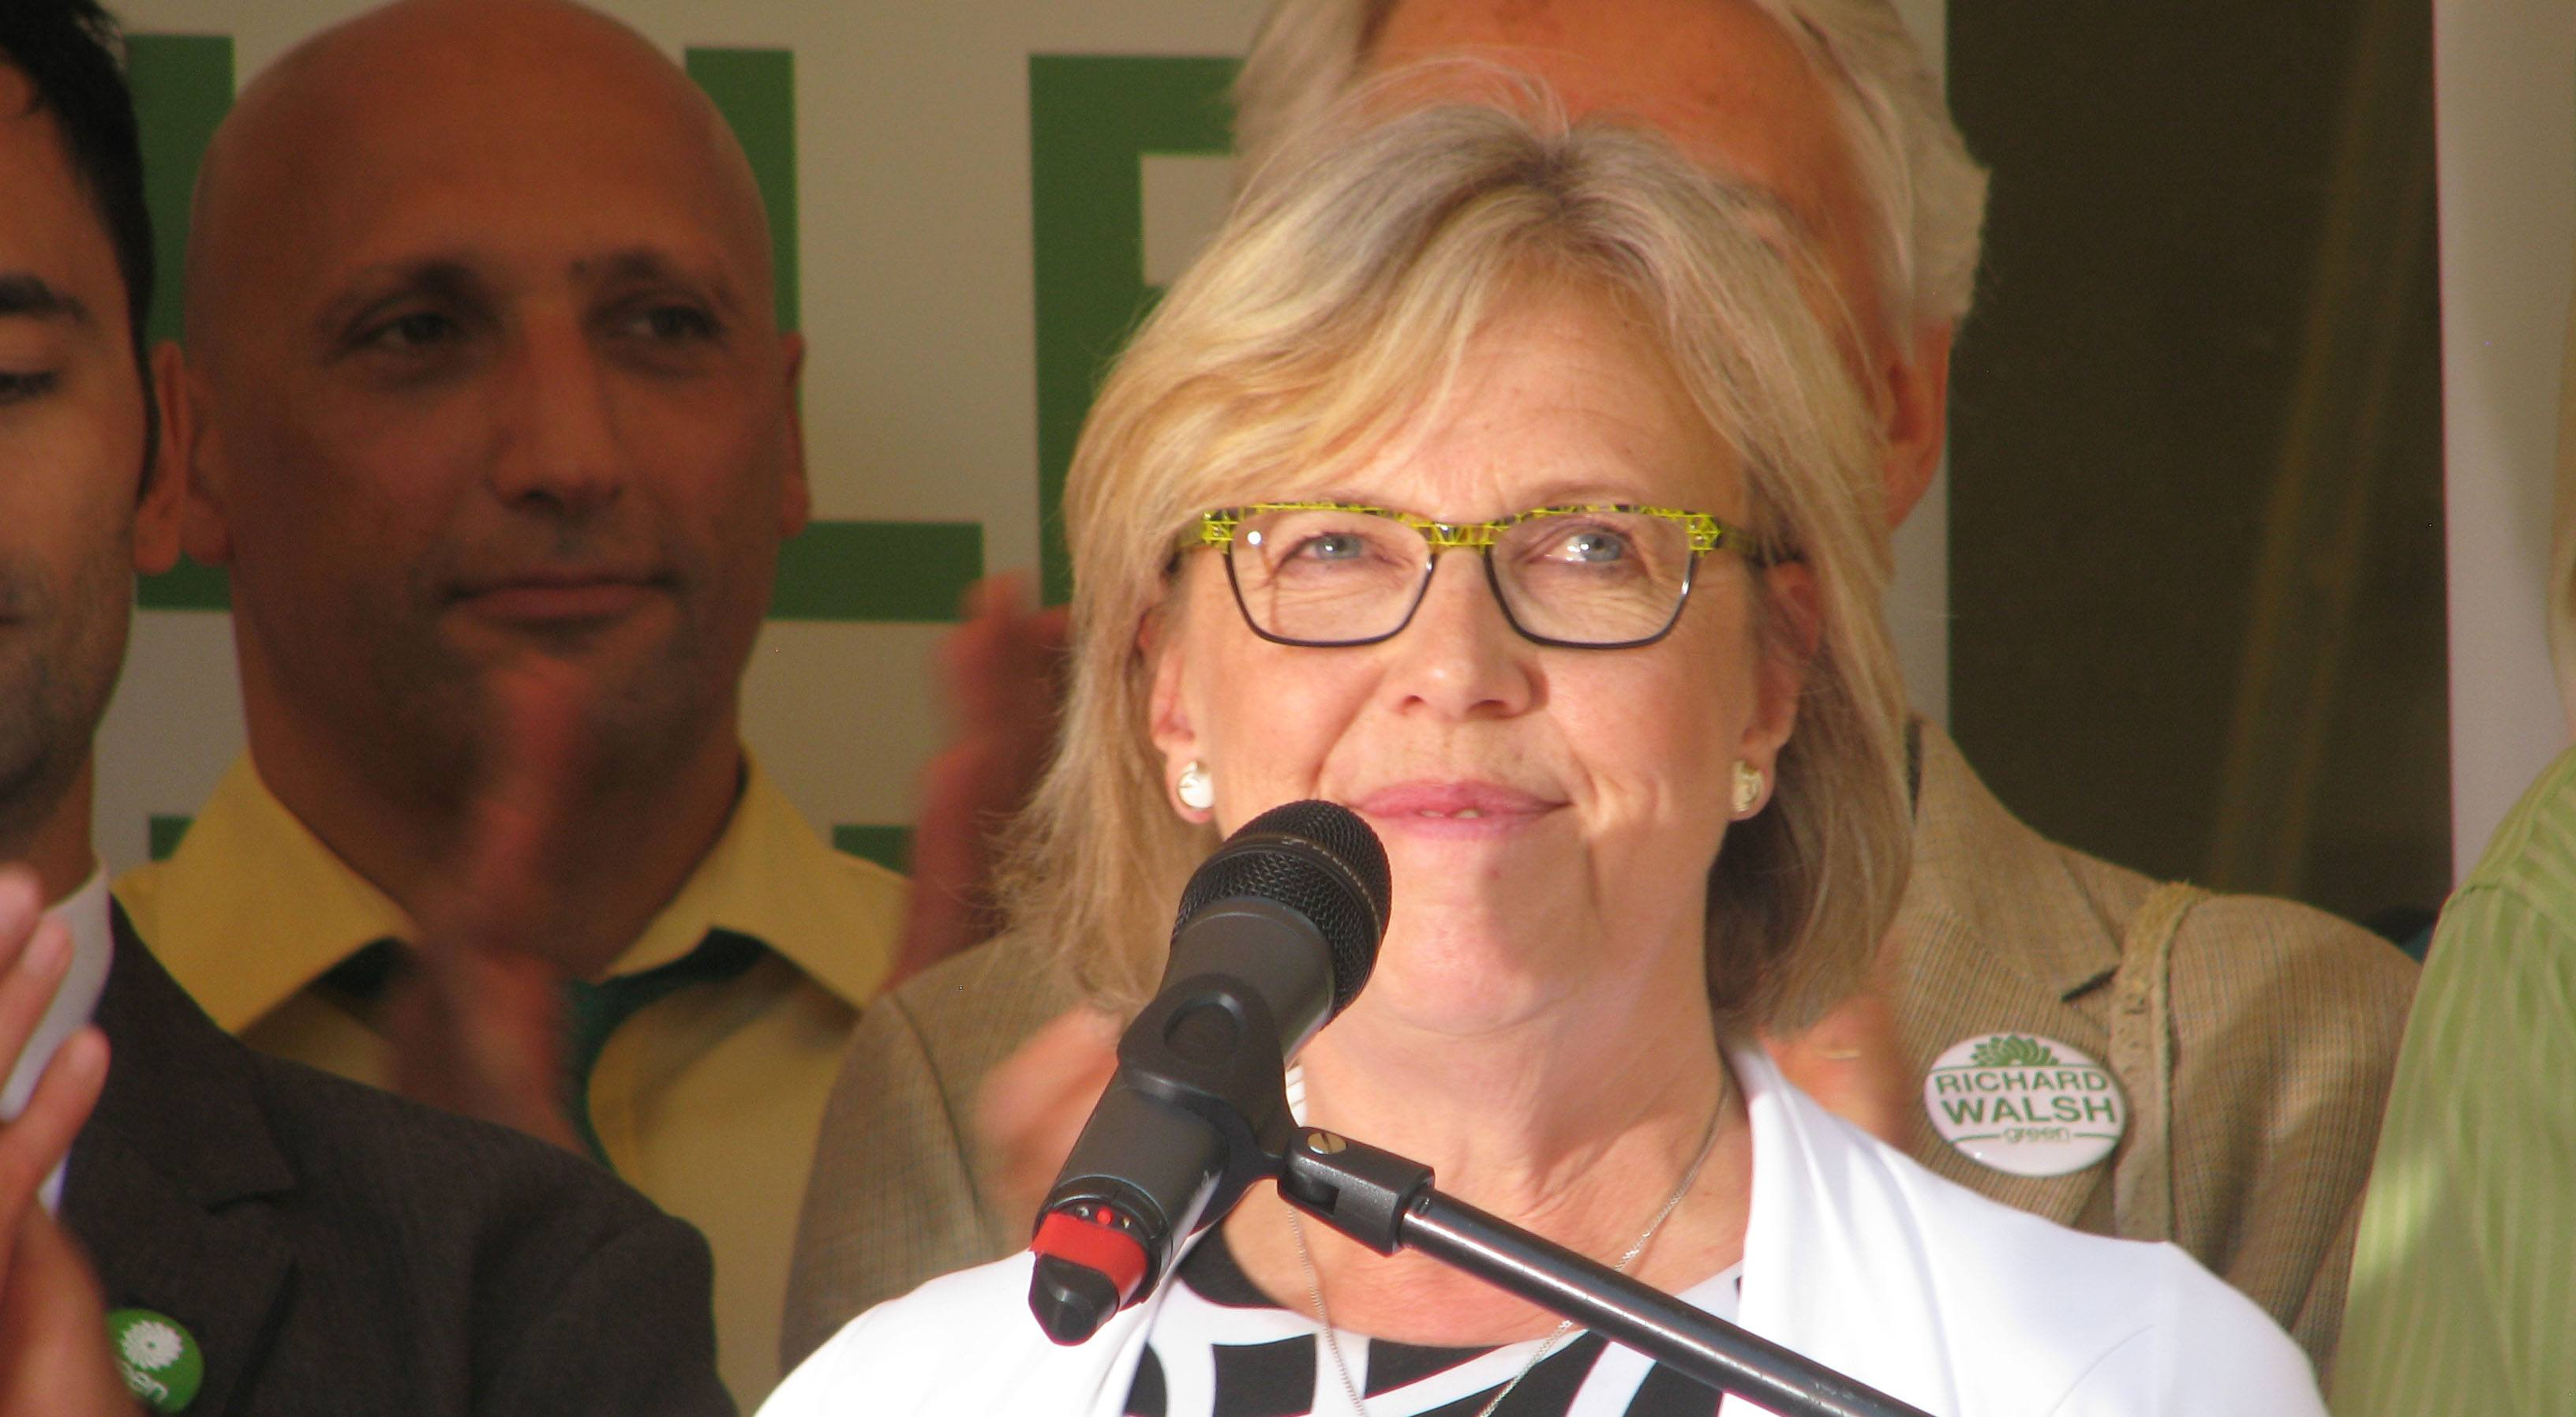 Elizabeth May to stay on as Green Party leader